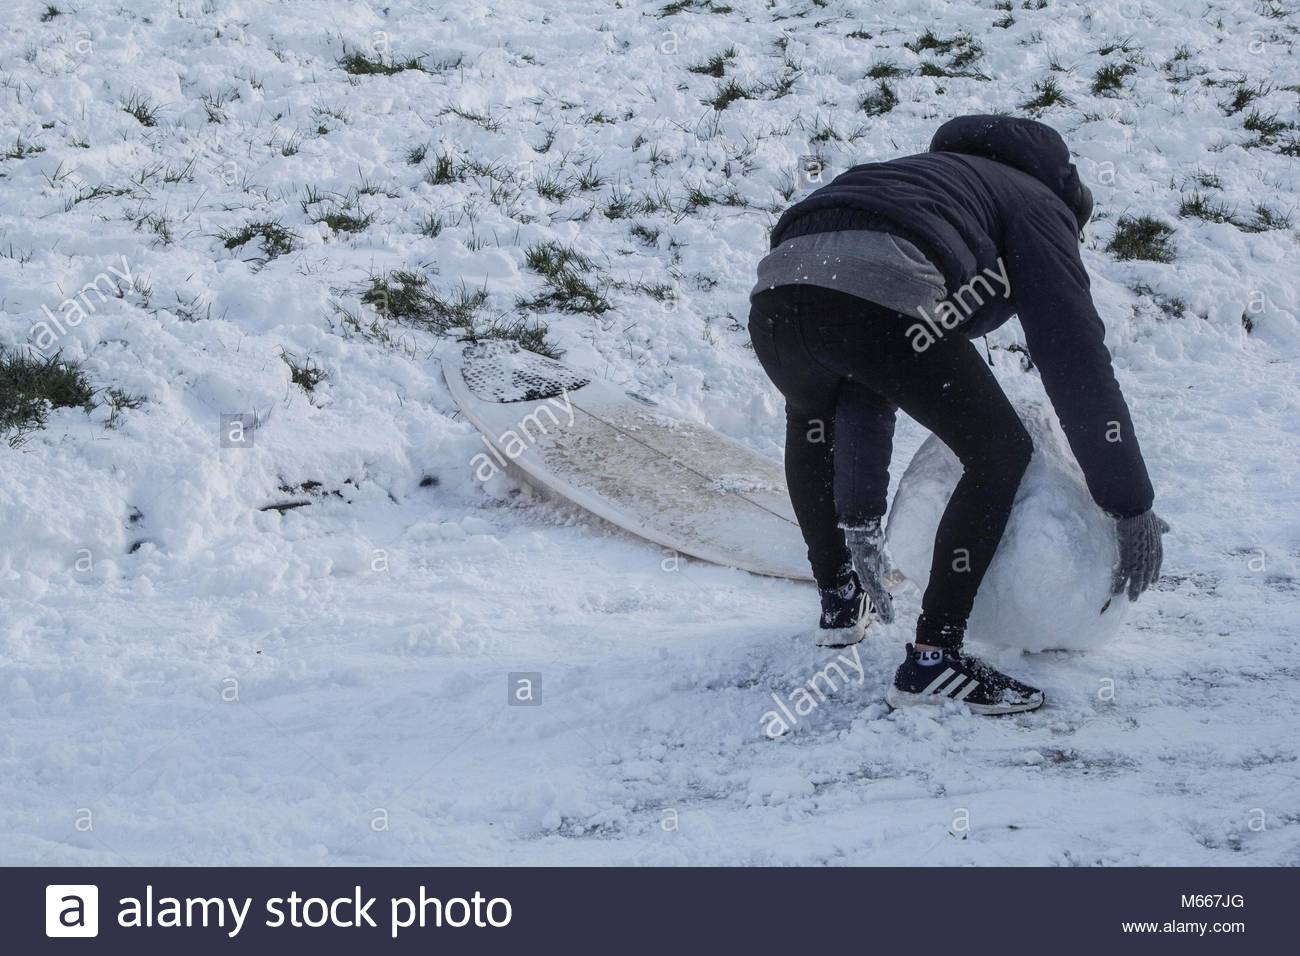 cornish-teens-surfing-in-the-snow-M667JG.jpg